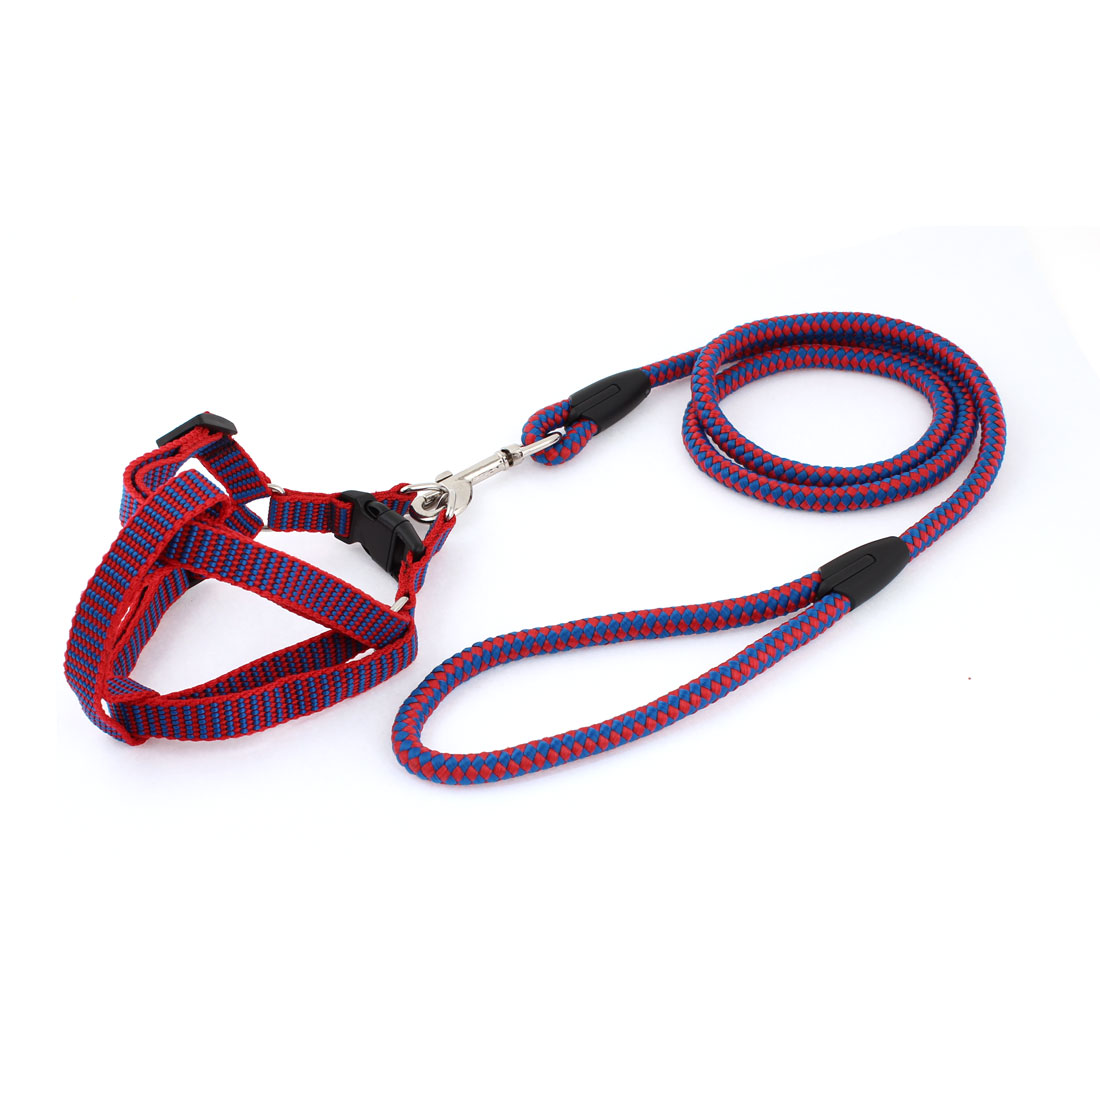 Lobster Clasp Design Check Pattern Dog Harness Leash Red Blue 0.9cm Wide